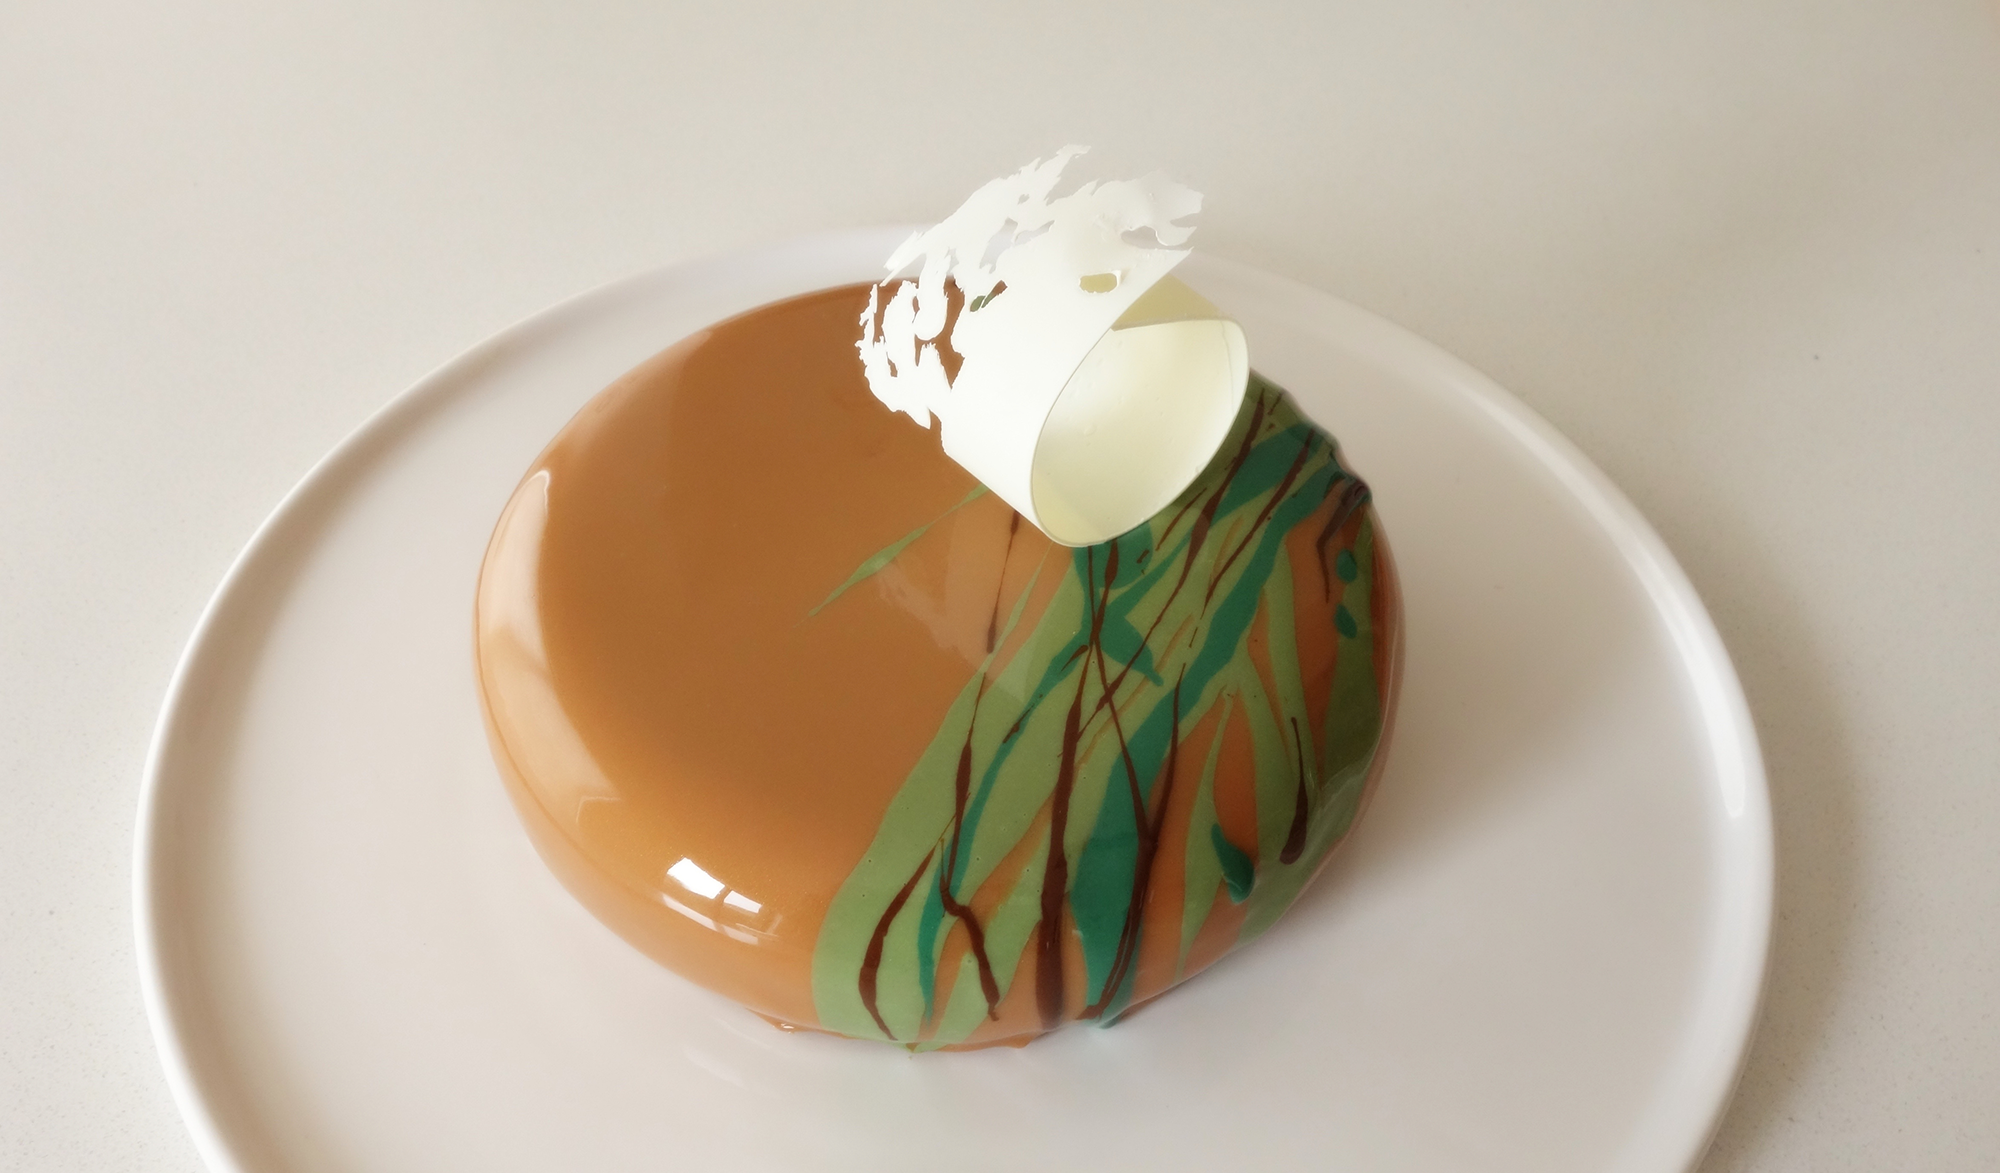 http://blog-assets.foodpairing.com/2016/11/Elaine-Young-Pistachio-Cardamom-Saffron-White-Choco-Entremet.png